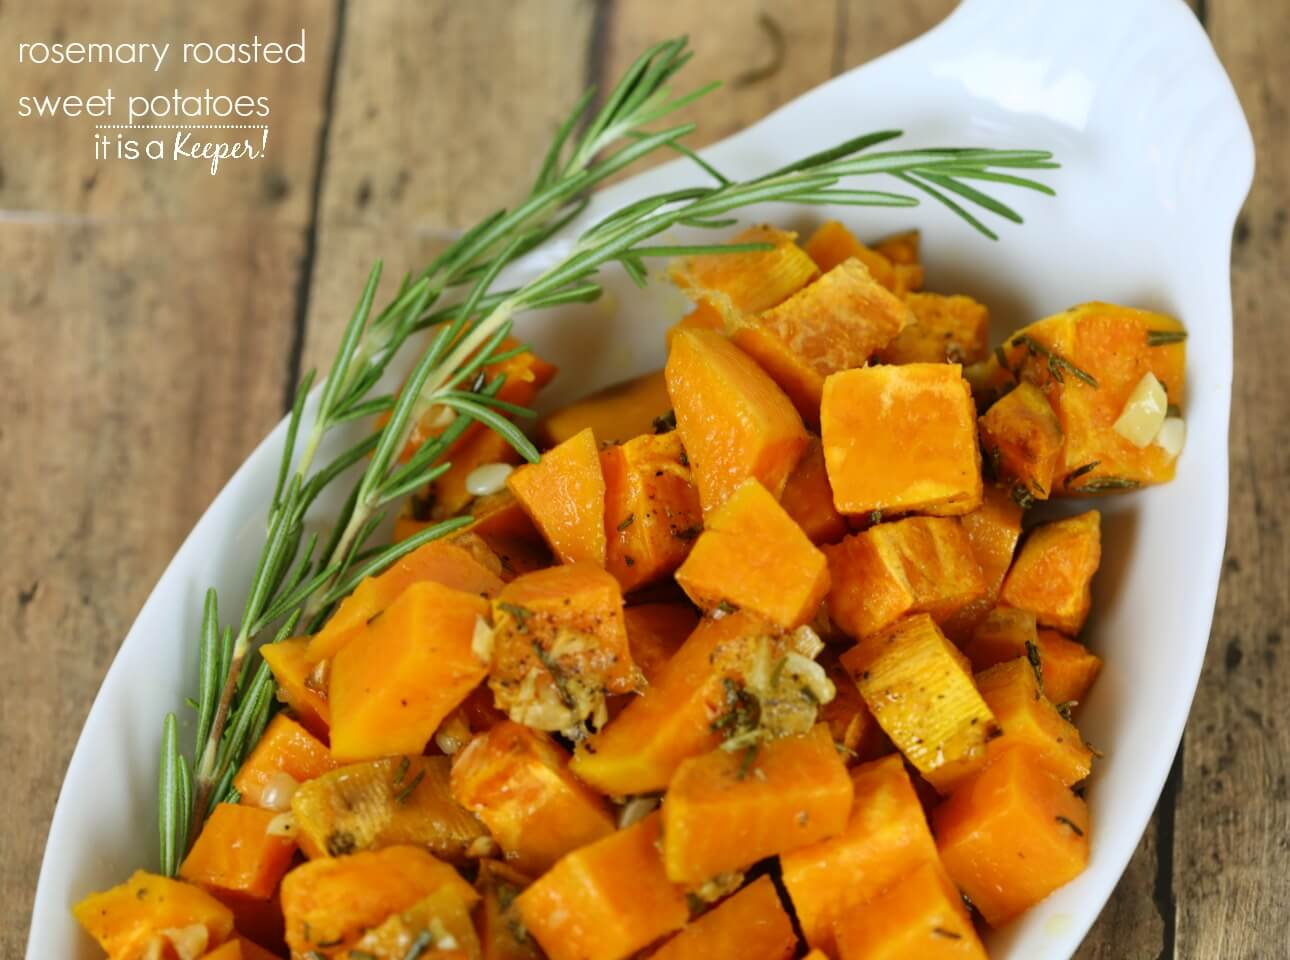 Rosemary Roasted Sweet Potatoes Recipe – an easy and delicious vegetable side dish C